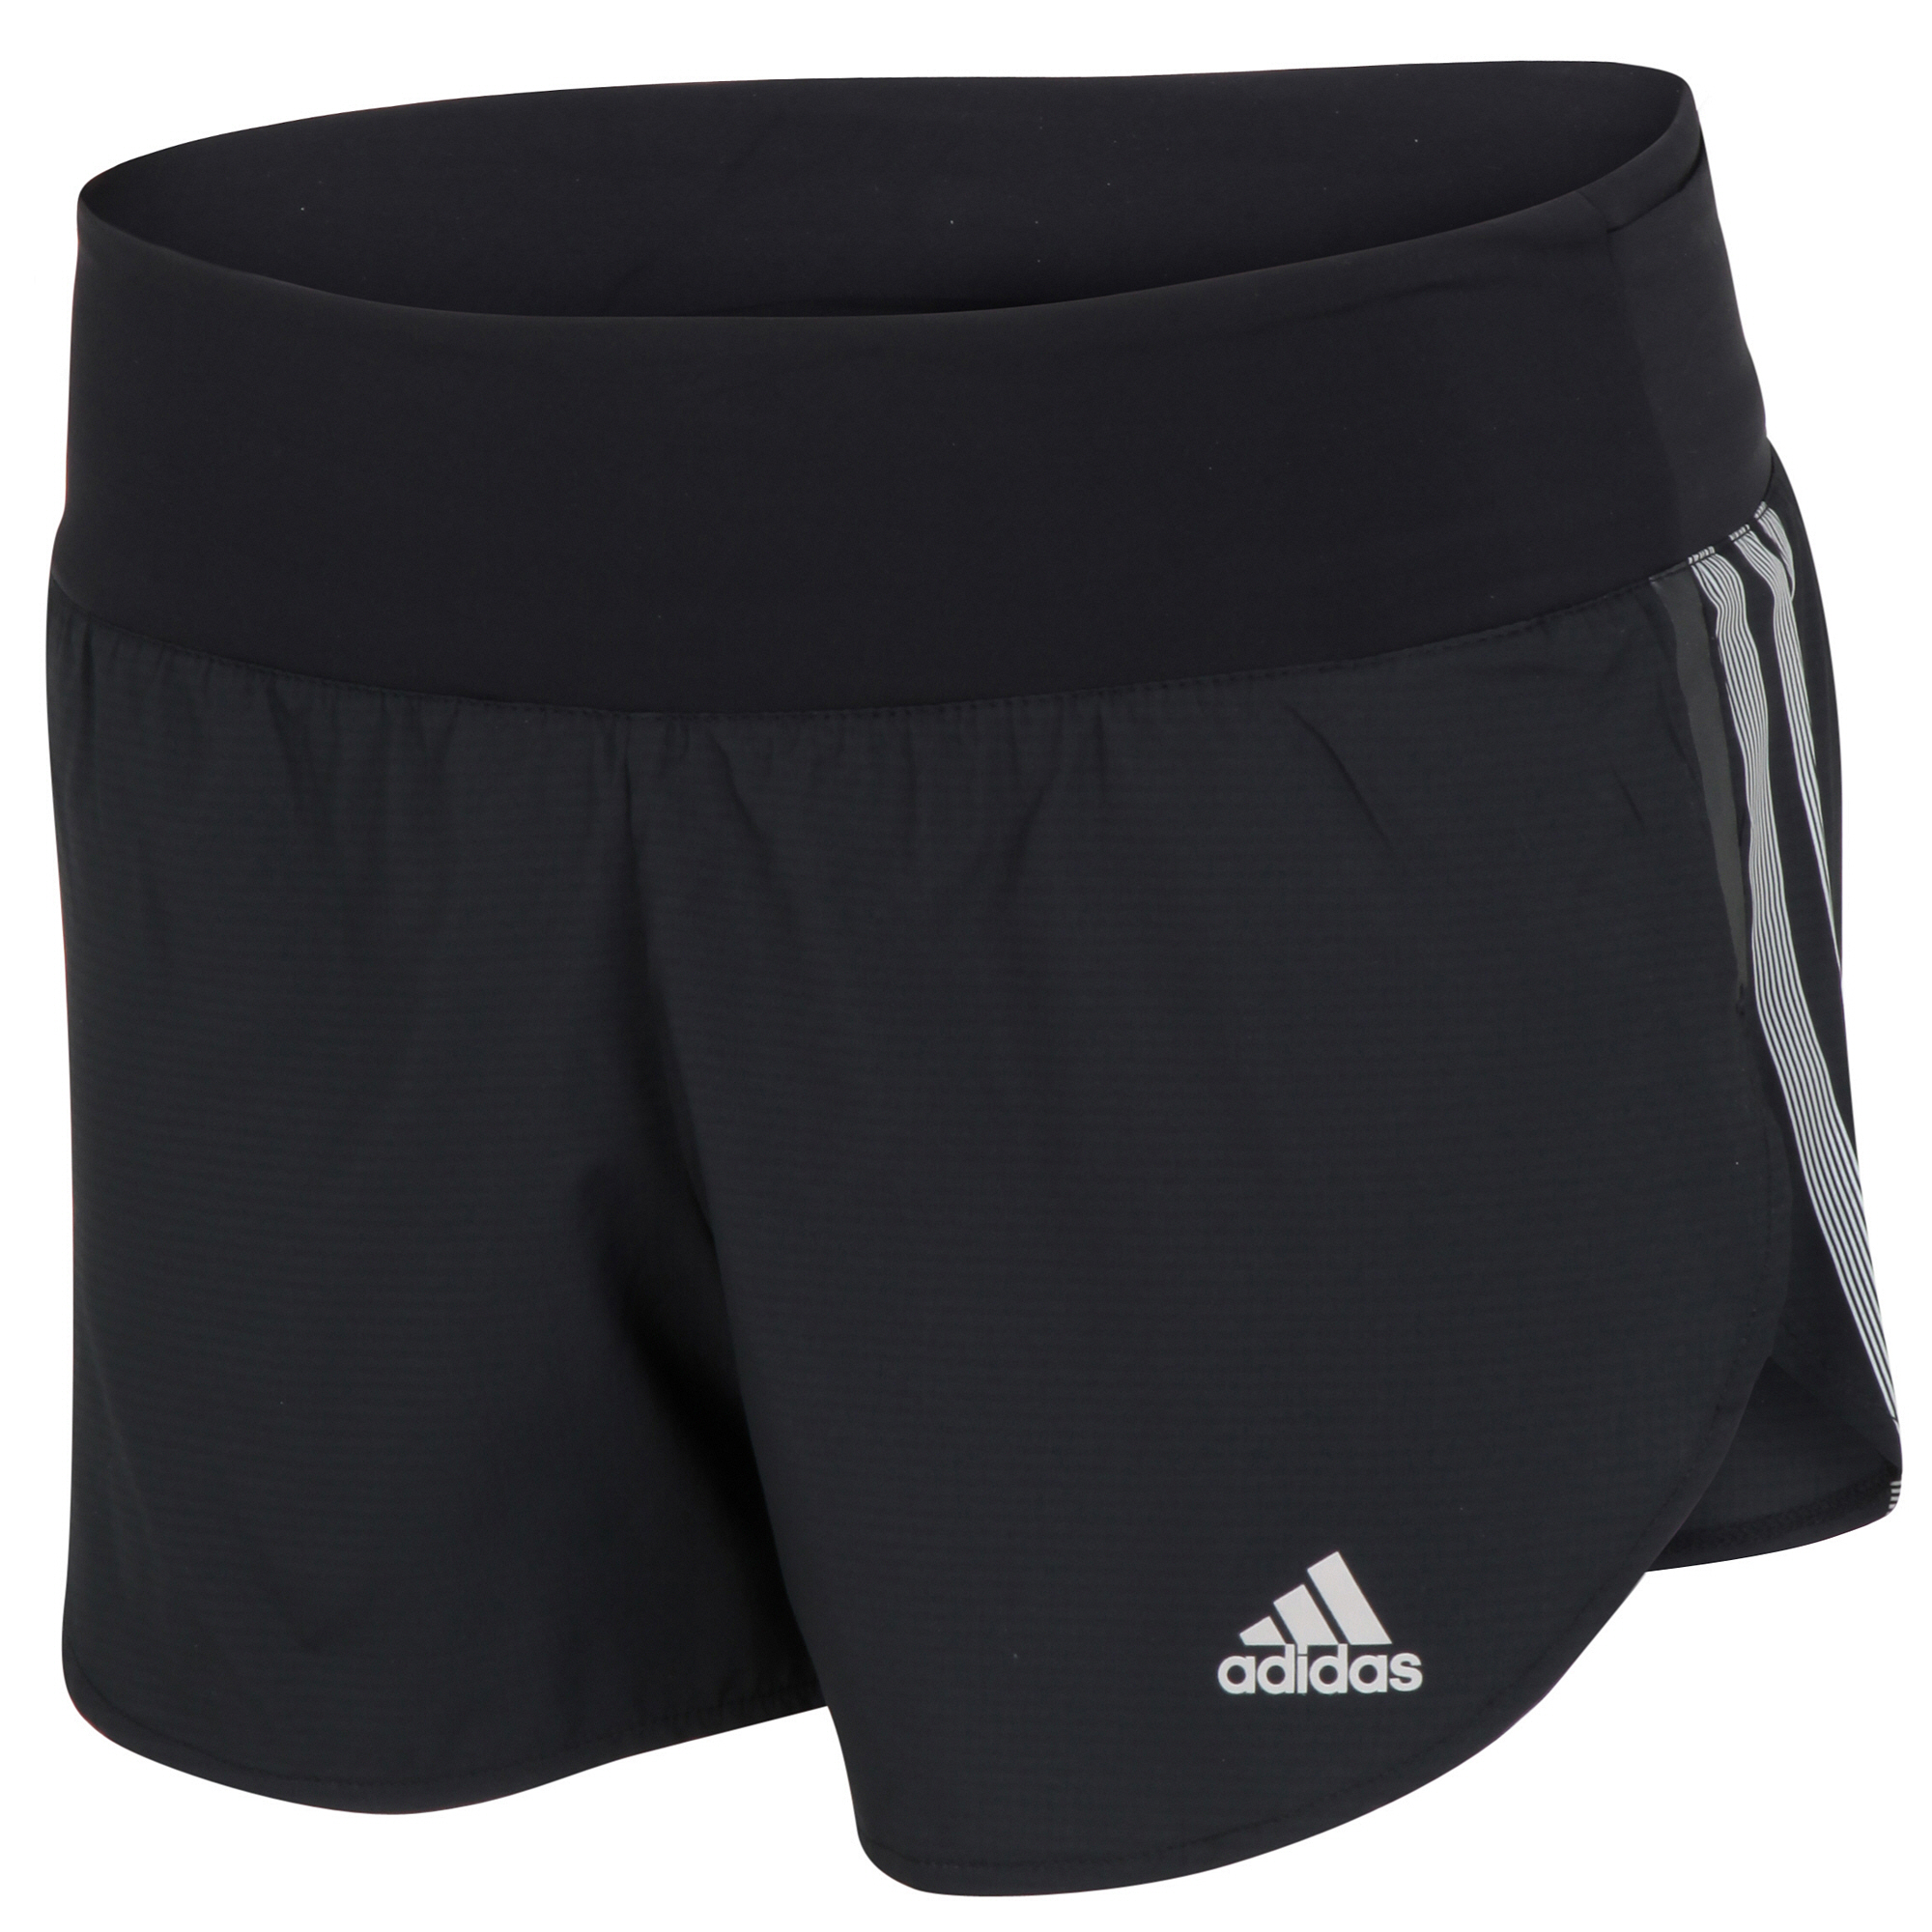 Shorts | adidas | Women's Adizero Split Short (SS16